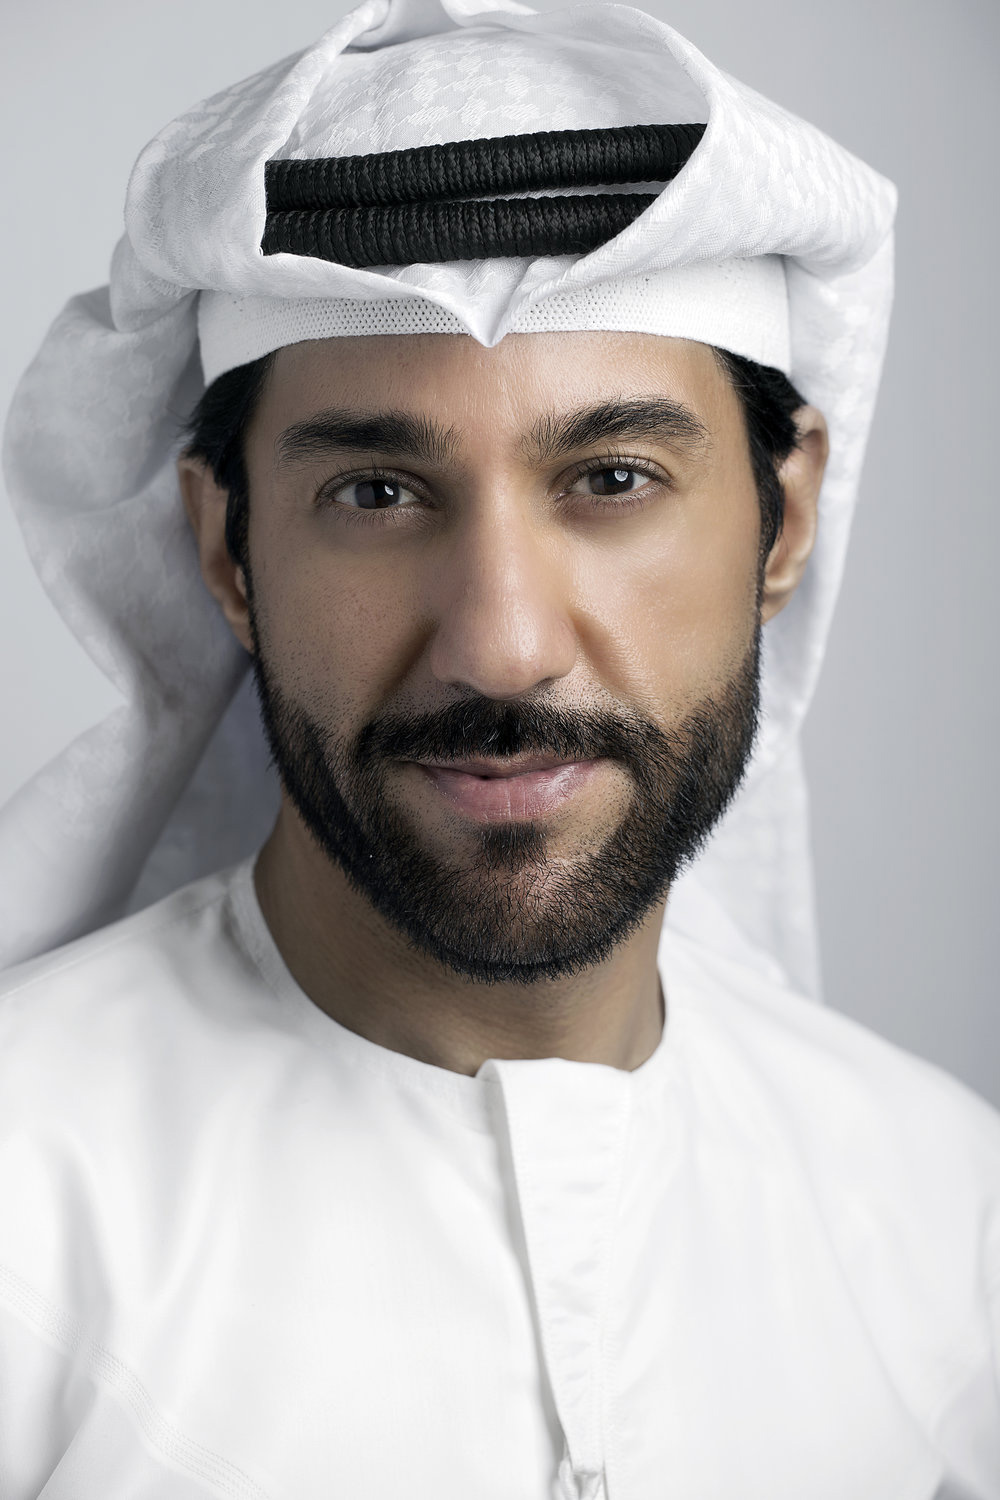 Corporate Headshot Dubai 19